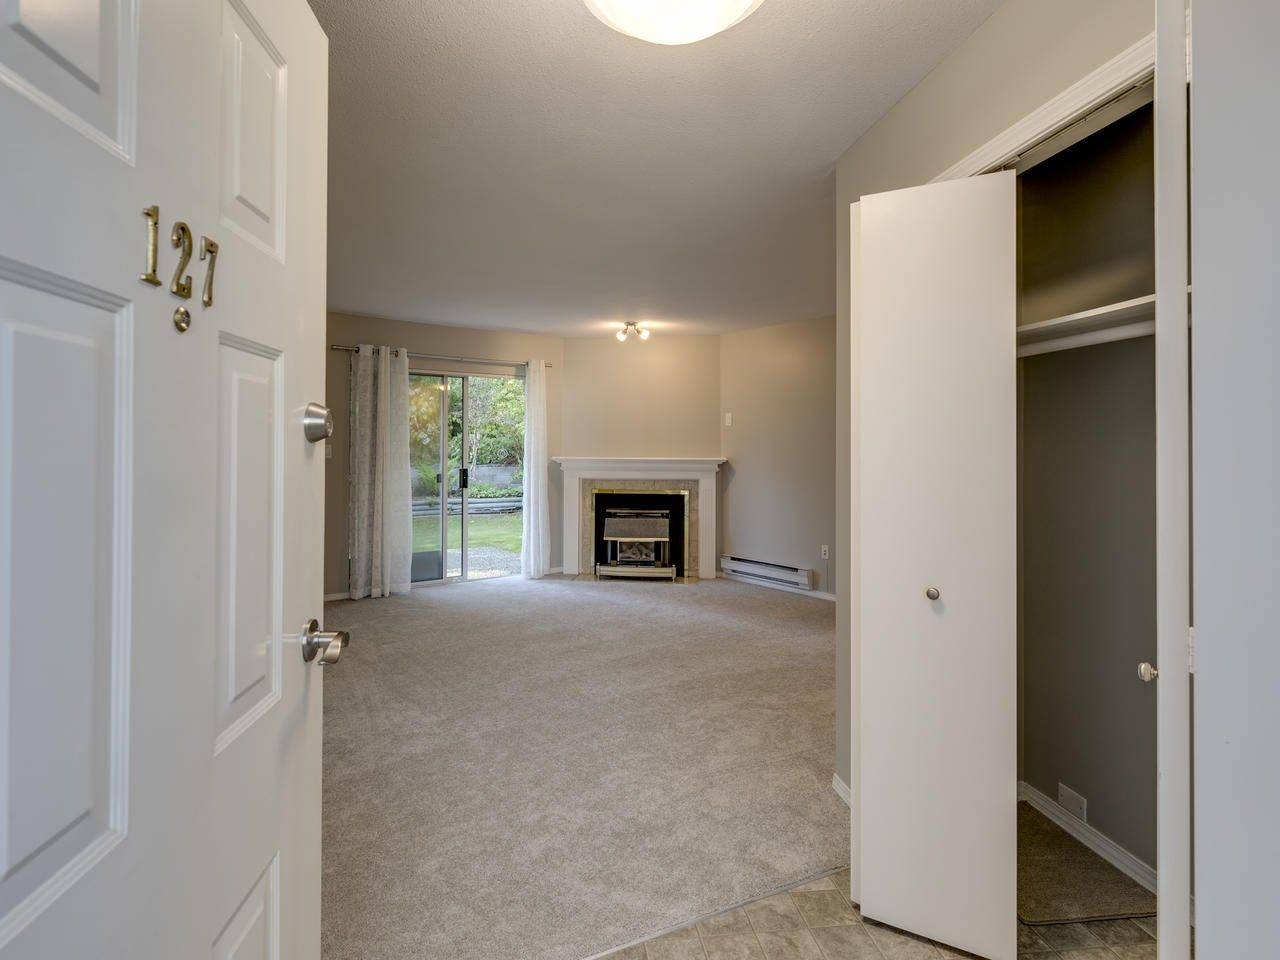 """Photo 12: Photos: 127 22555 116 Avenue in Maple Ridge: East Central Townhouse for sale in """"HILLSIDE"""" : MLS®# R2493046"""